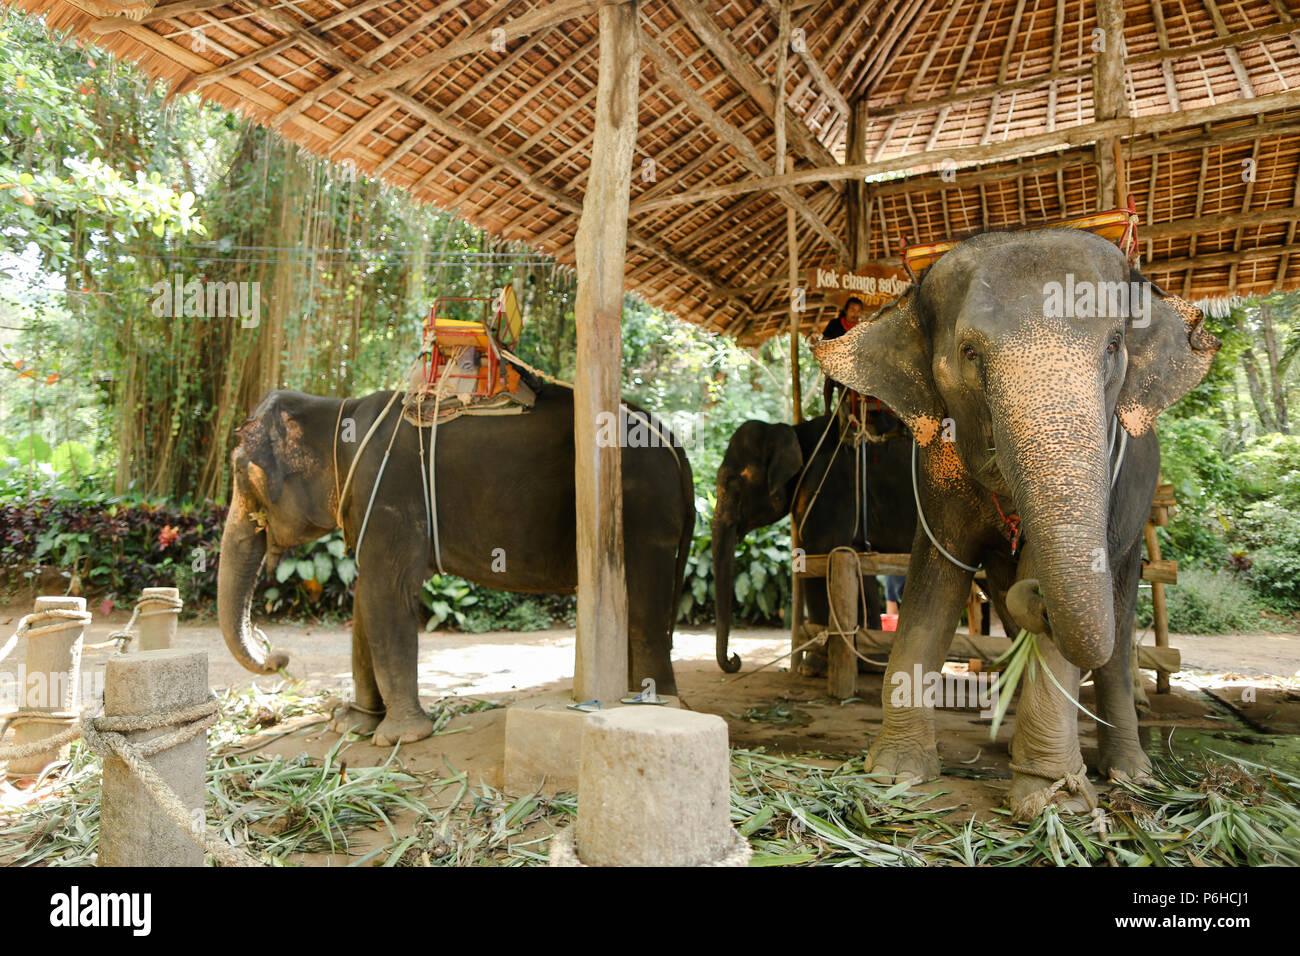 Domesticated elephants with rider saddle in Thailand. - Stock Image